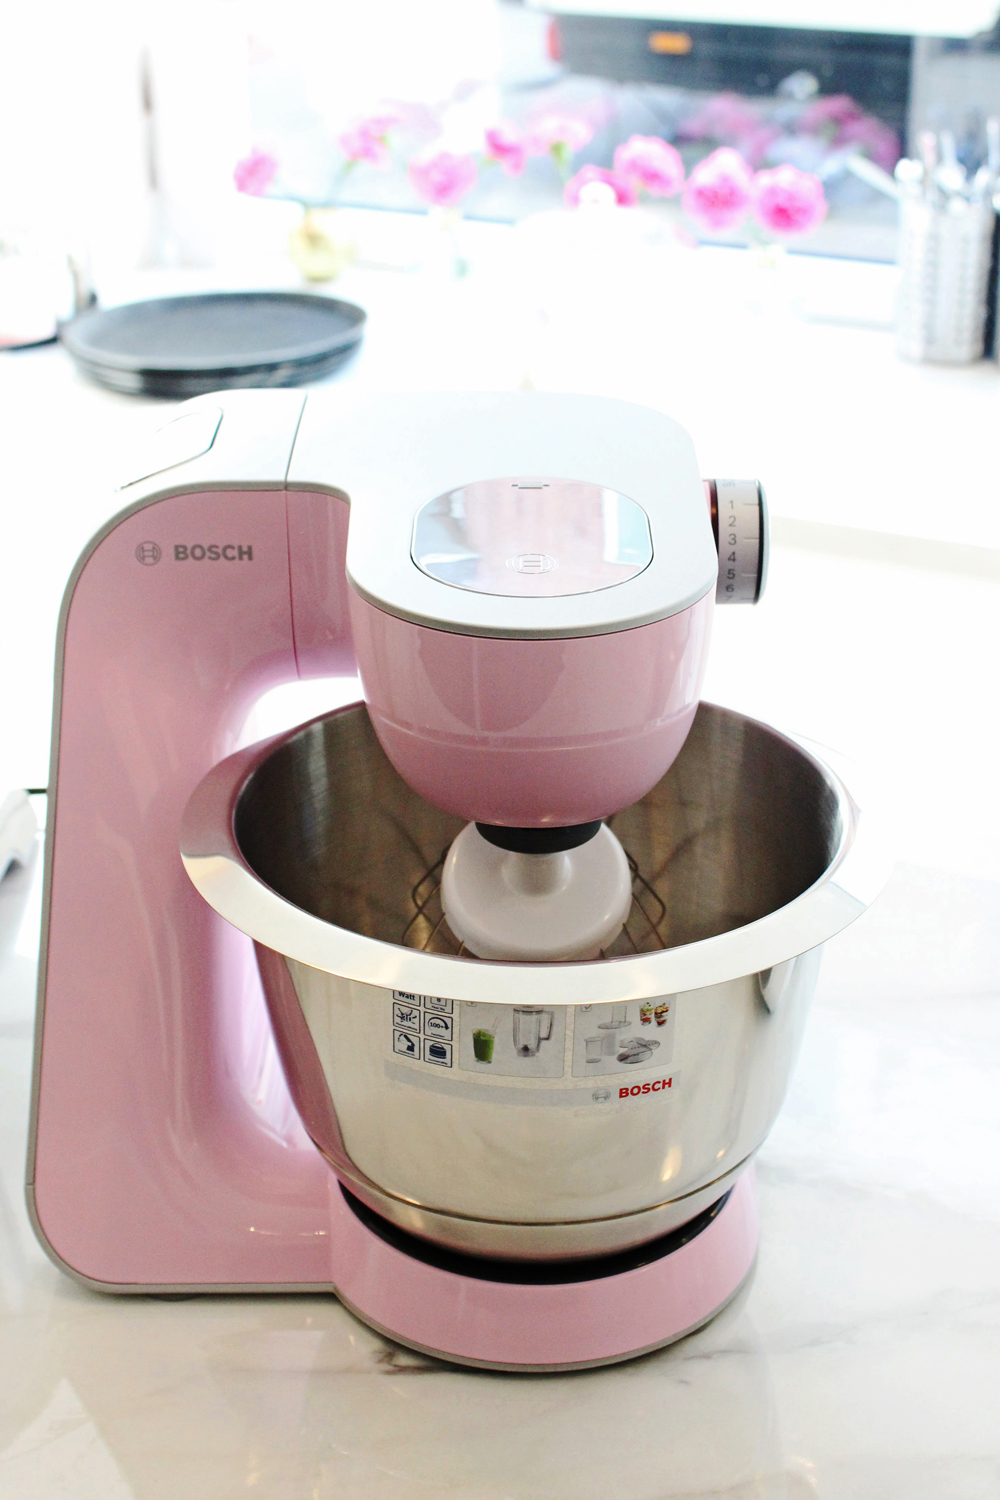 Bosch Backevent MUM 5 Küchenmaschine Gentle Pink